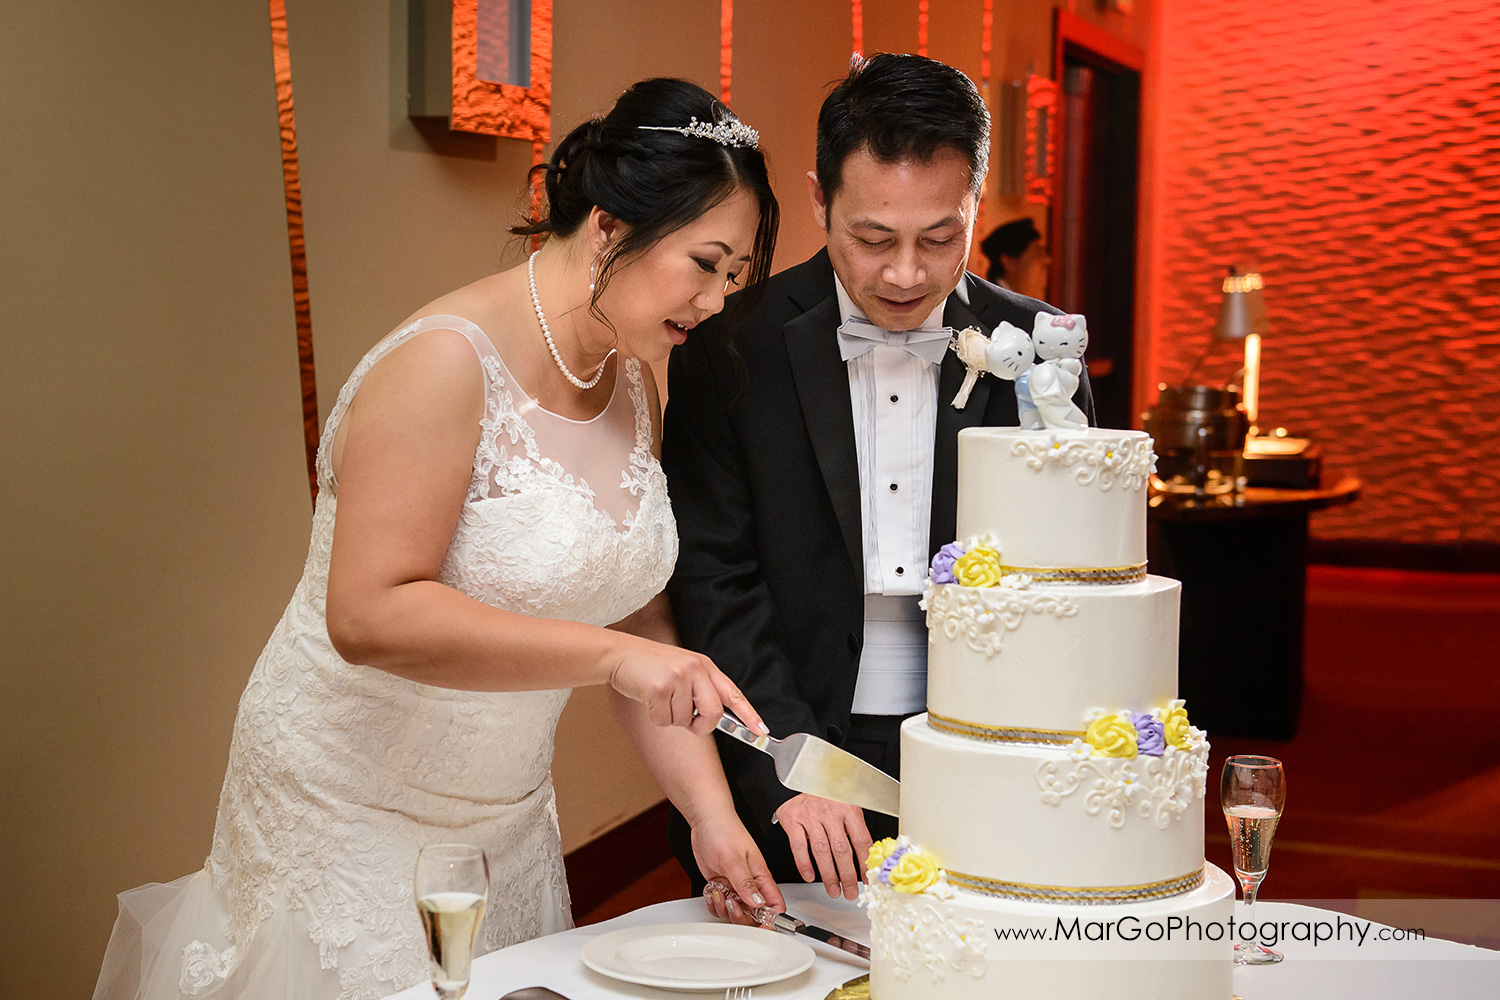 wedding cake cutting at Hilton San Francisco Airport Bayfront in Burlingame